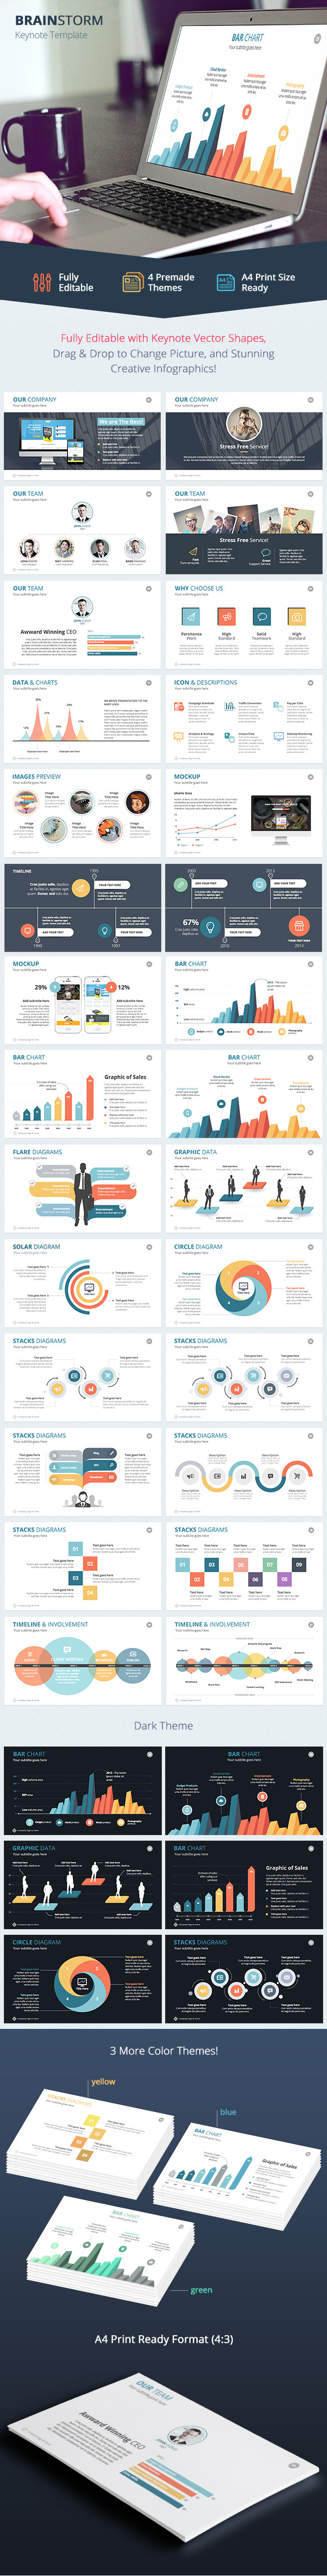 GraphicRiver BRAINSTORM Keynote Template 9562579